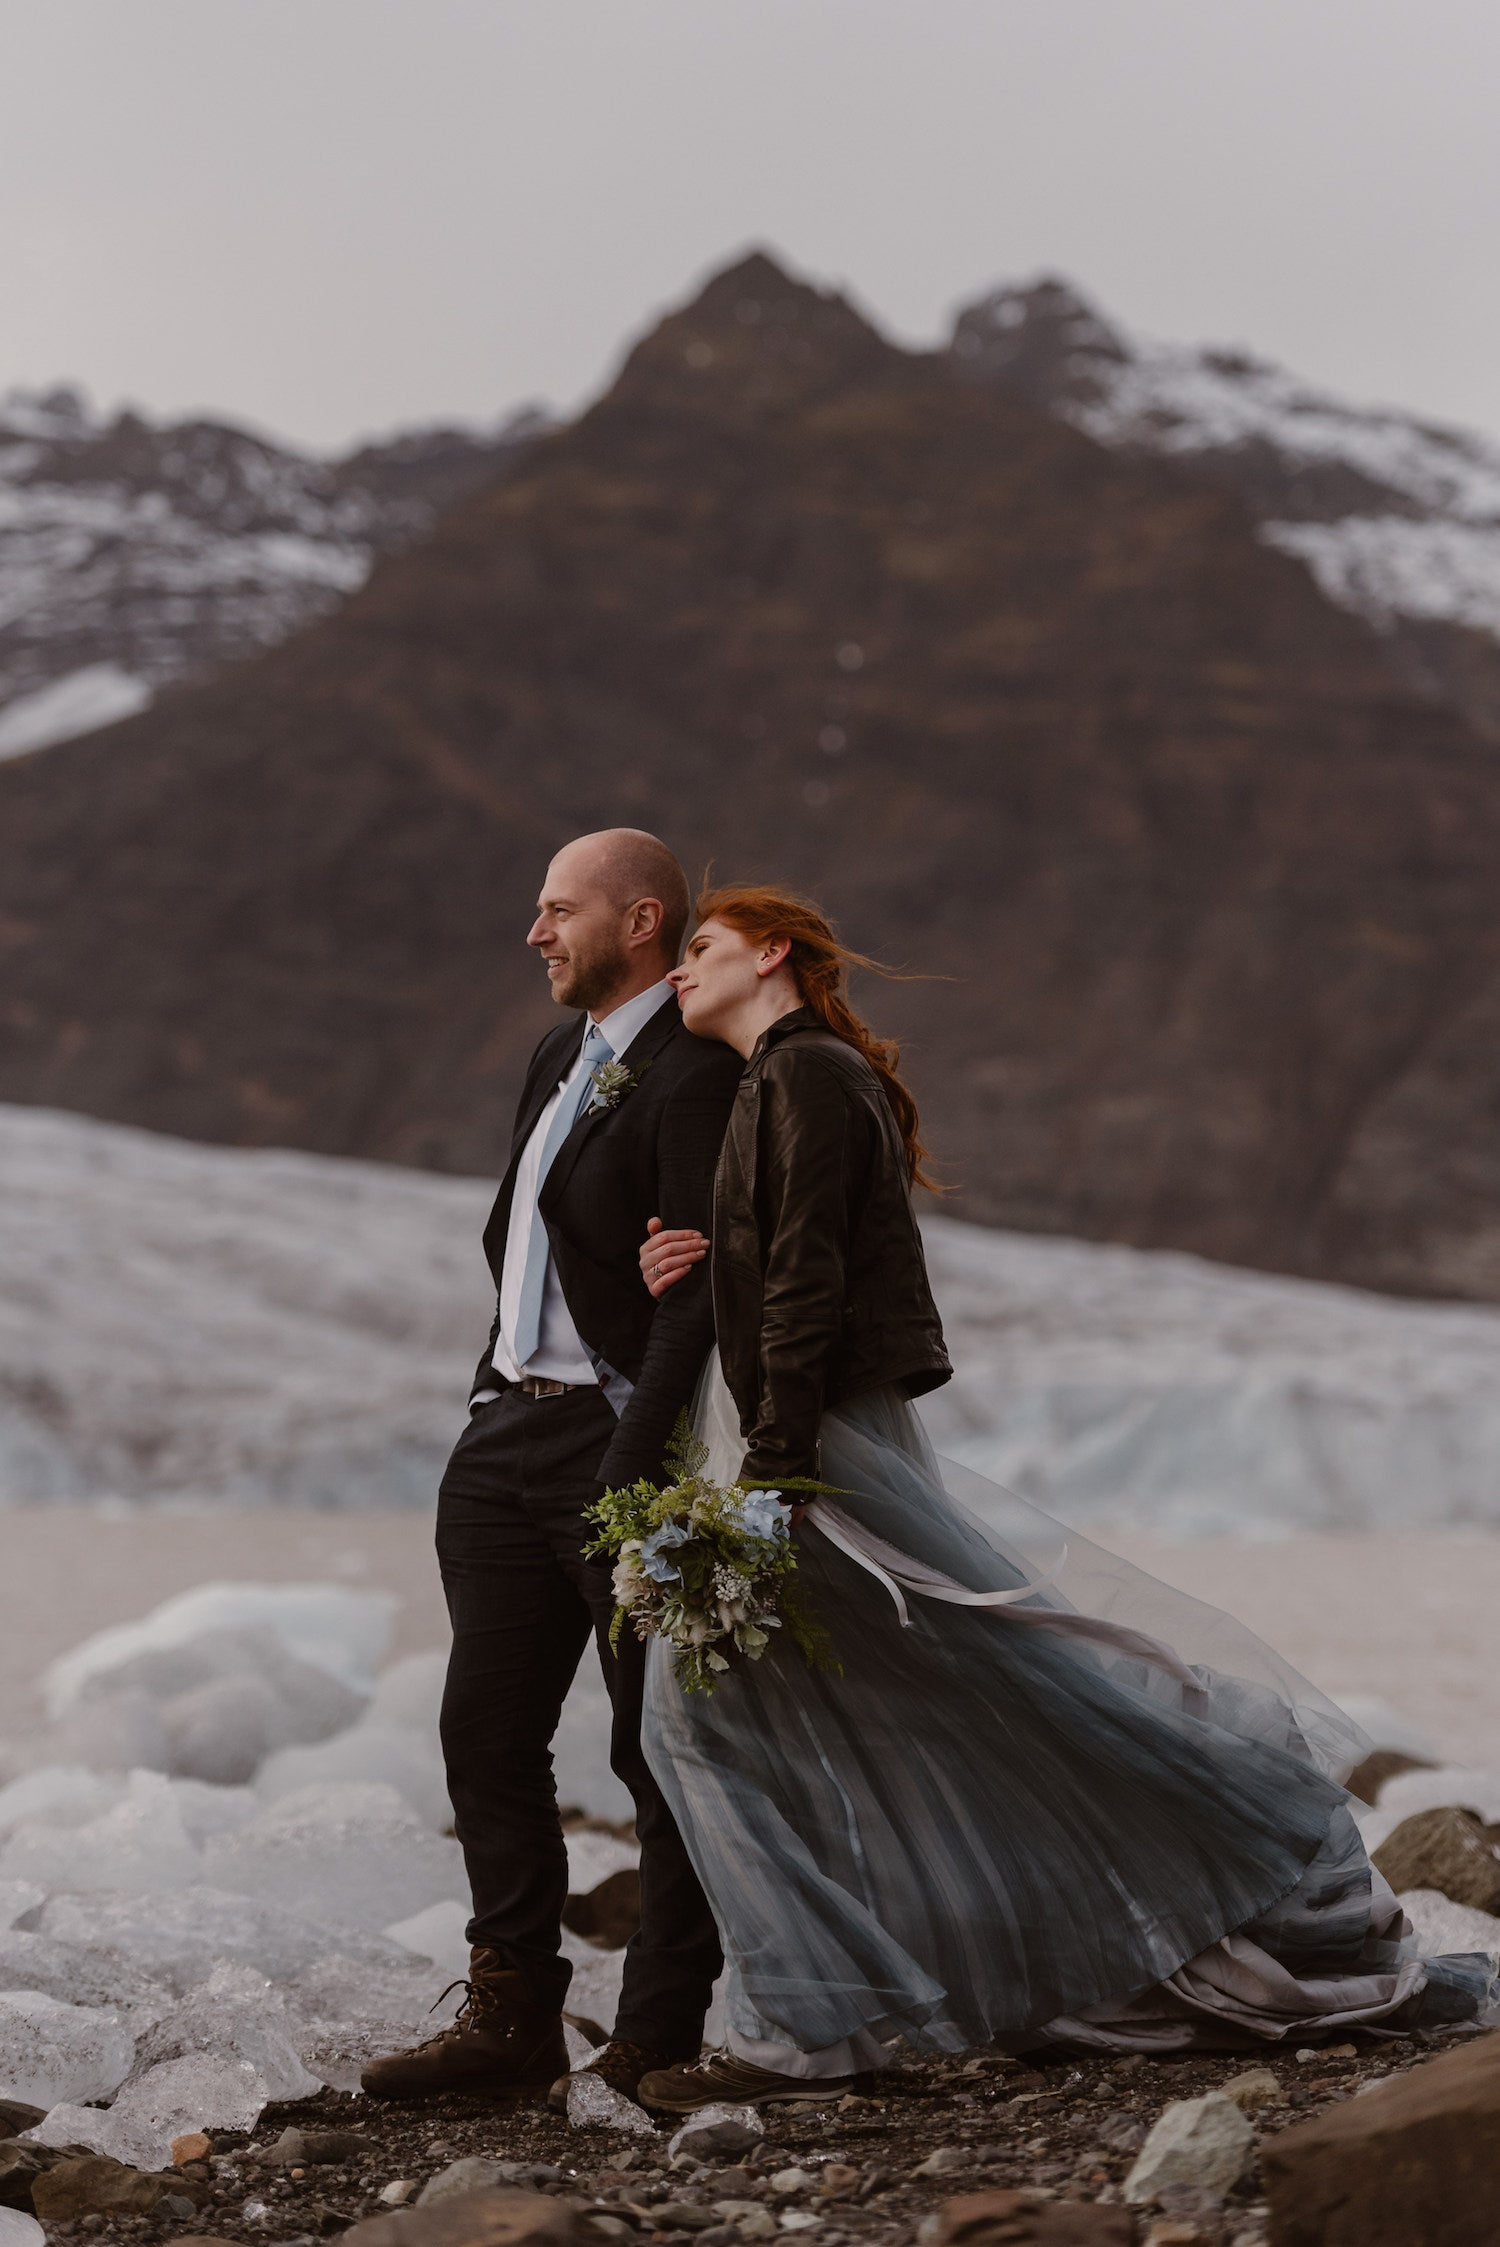 Bride and groom in winter wedding